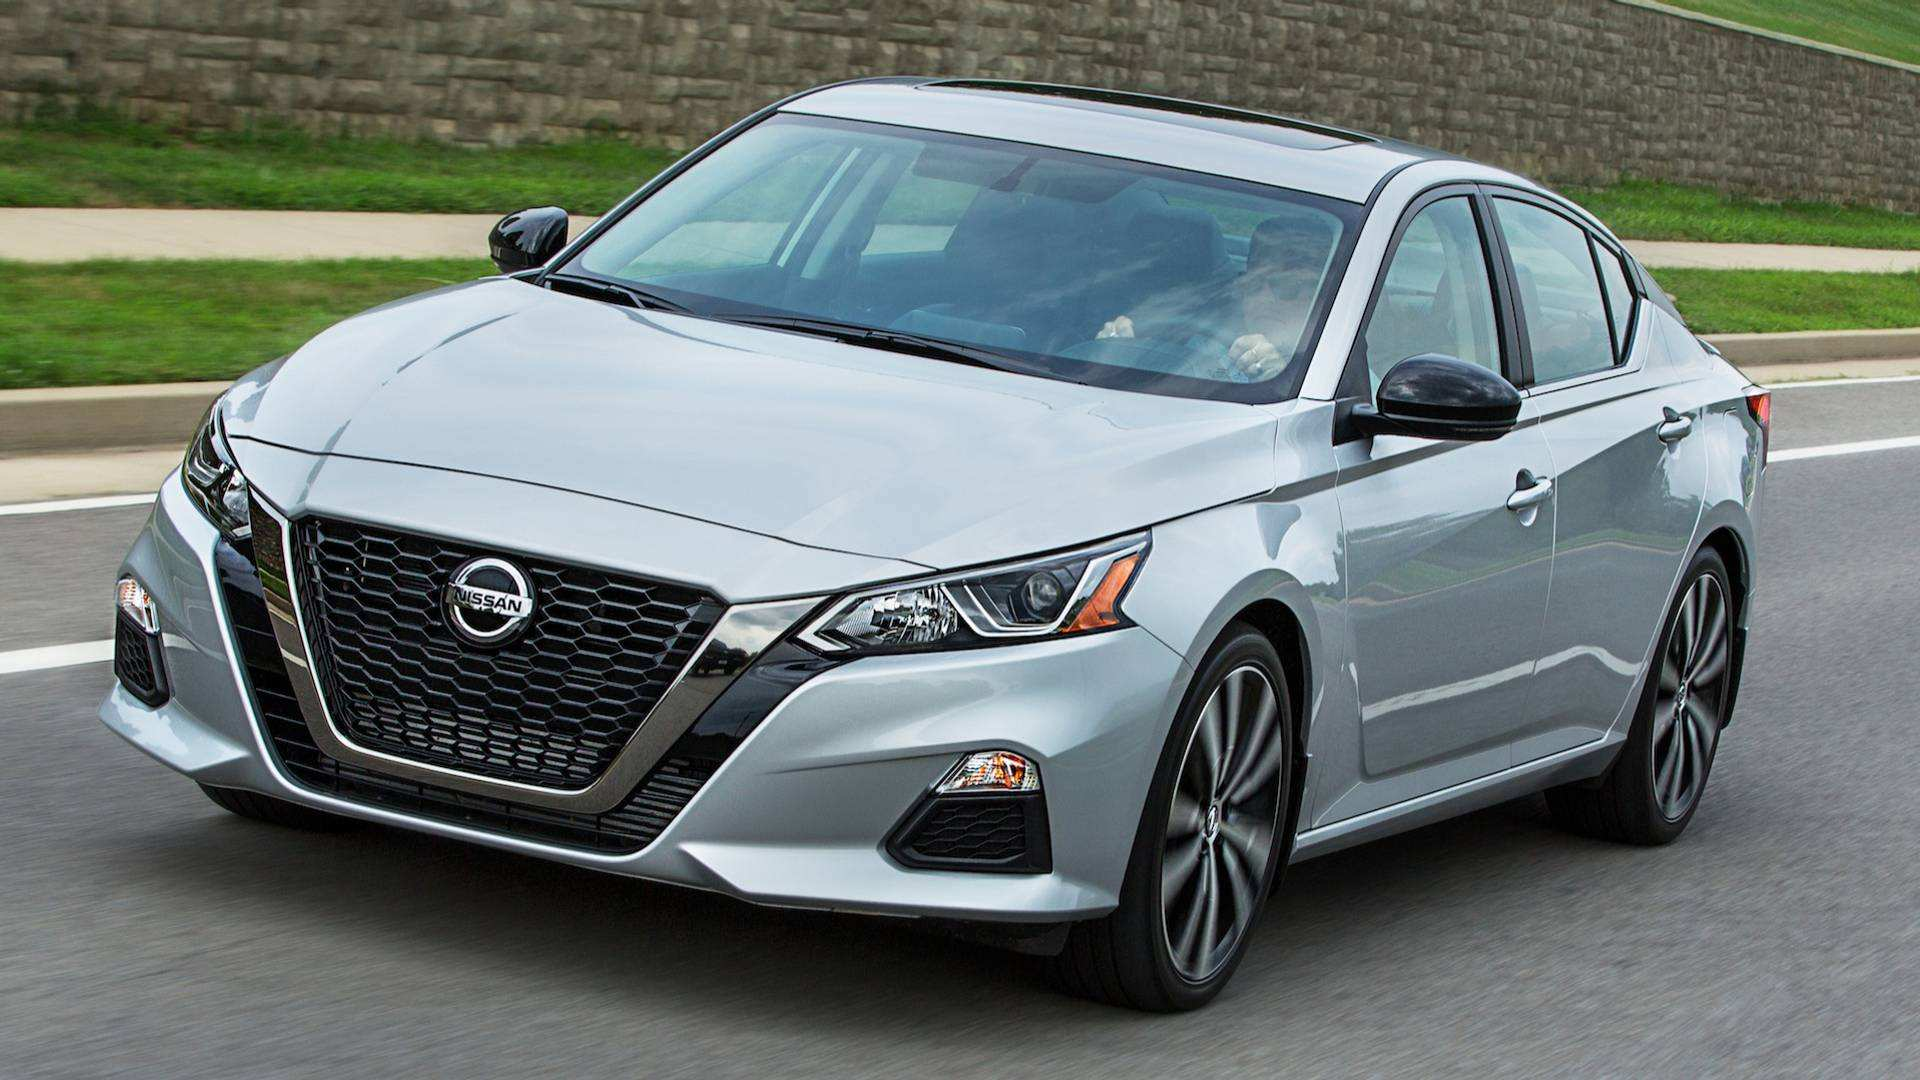 36 Gallery of The 2019 Nissan Altima Horsepower First Drive Pictures by The 2019 Nissan Altima Horsepower First Drive